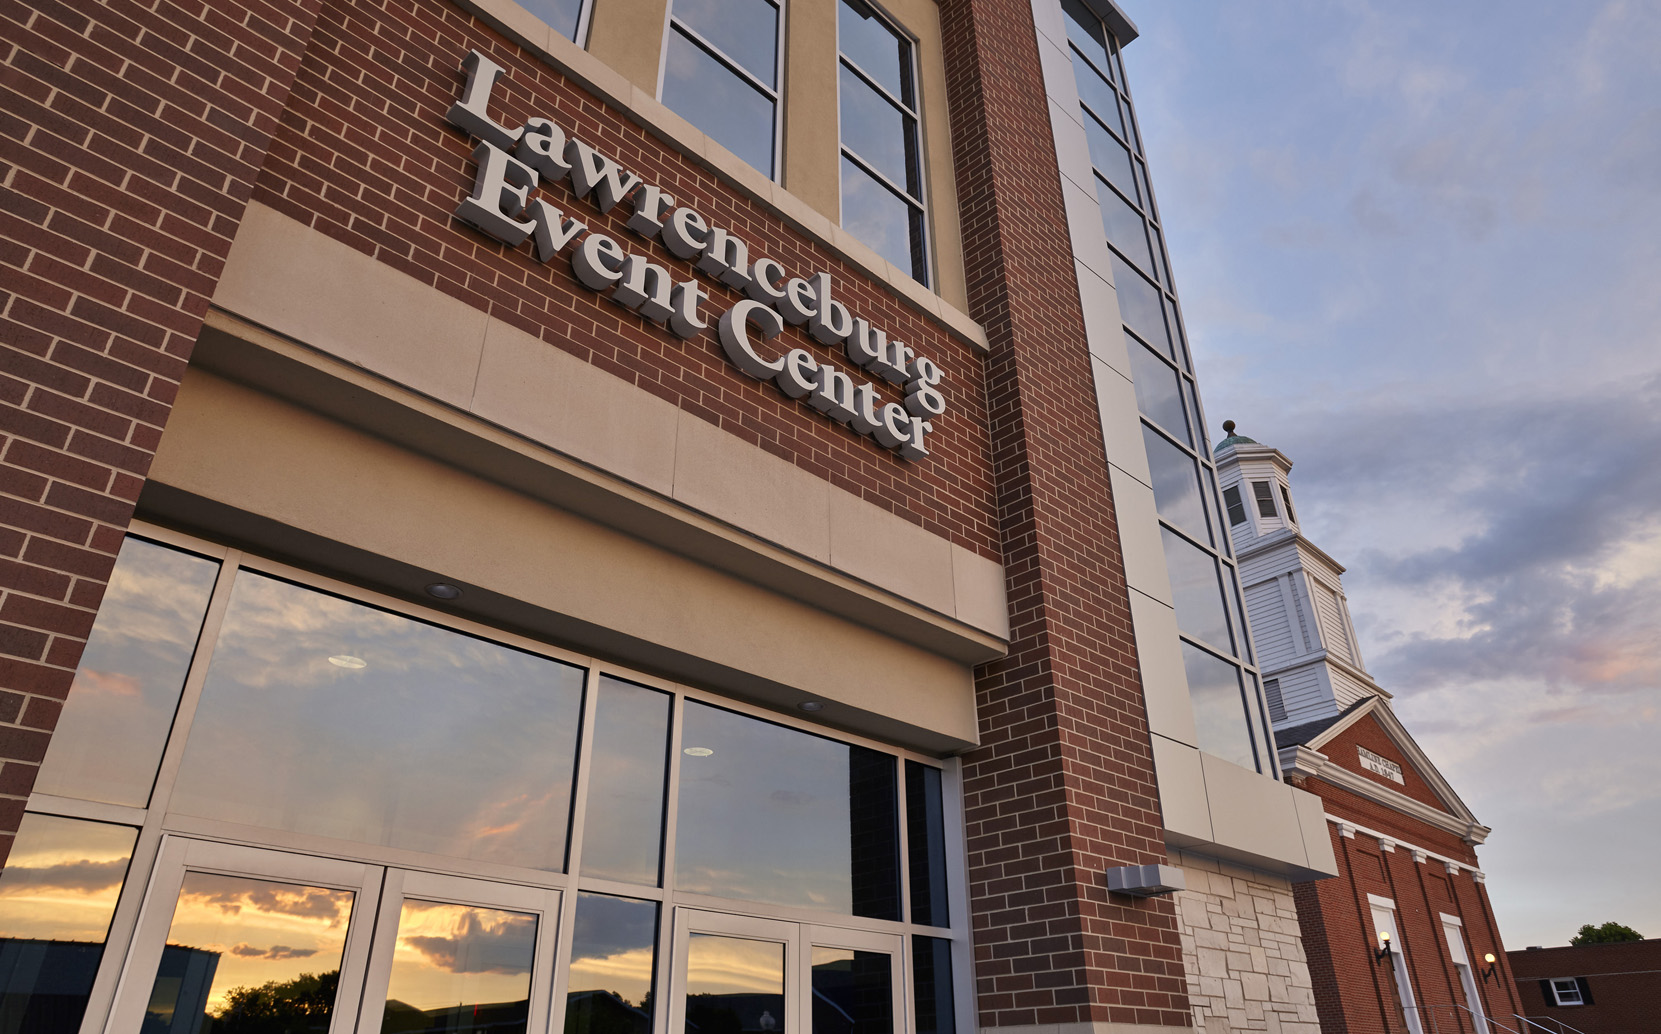 Doubletree By Hilton Hotel And Lawrenceburg Event Center